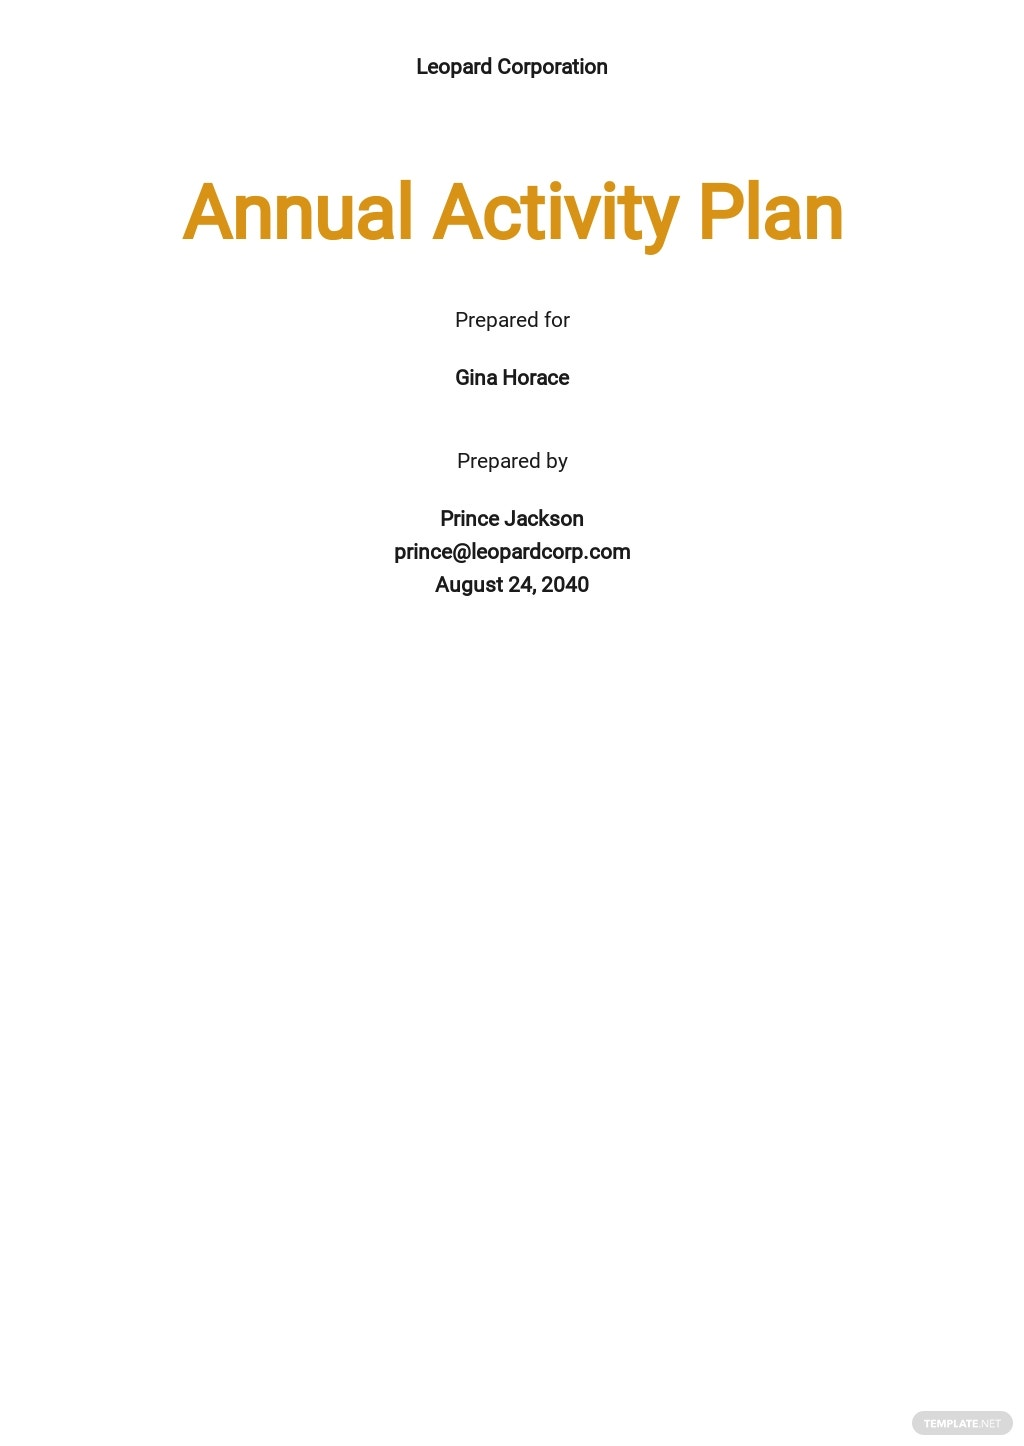 Annual Activity Plan Template